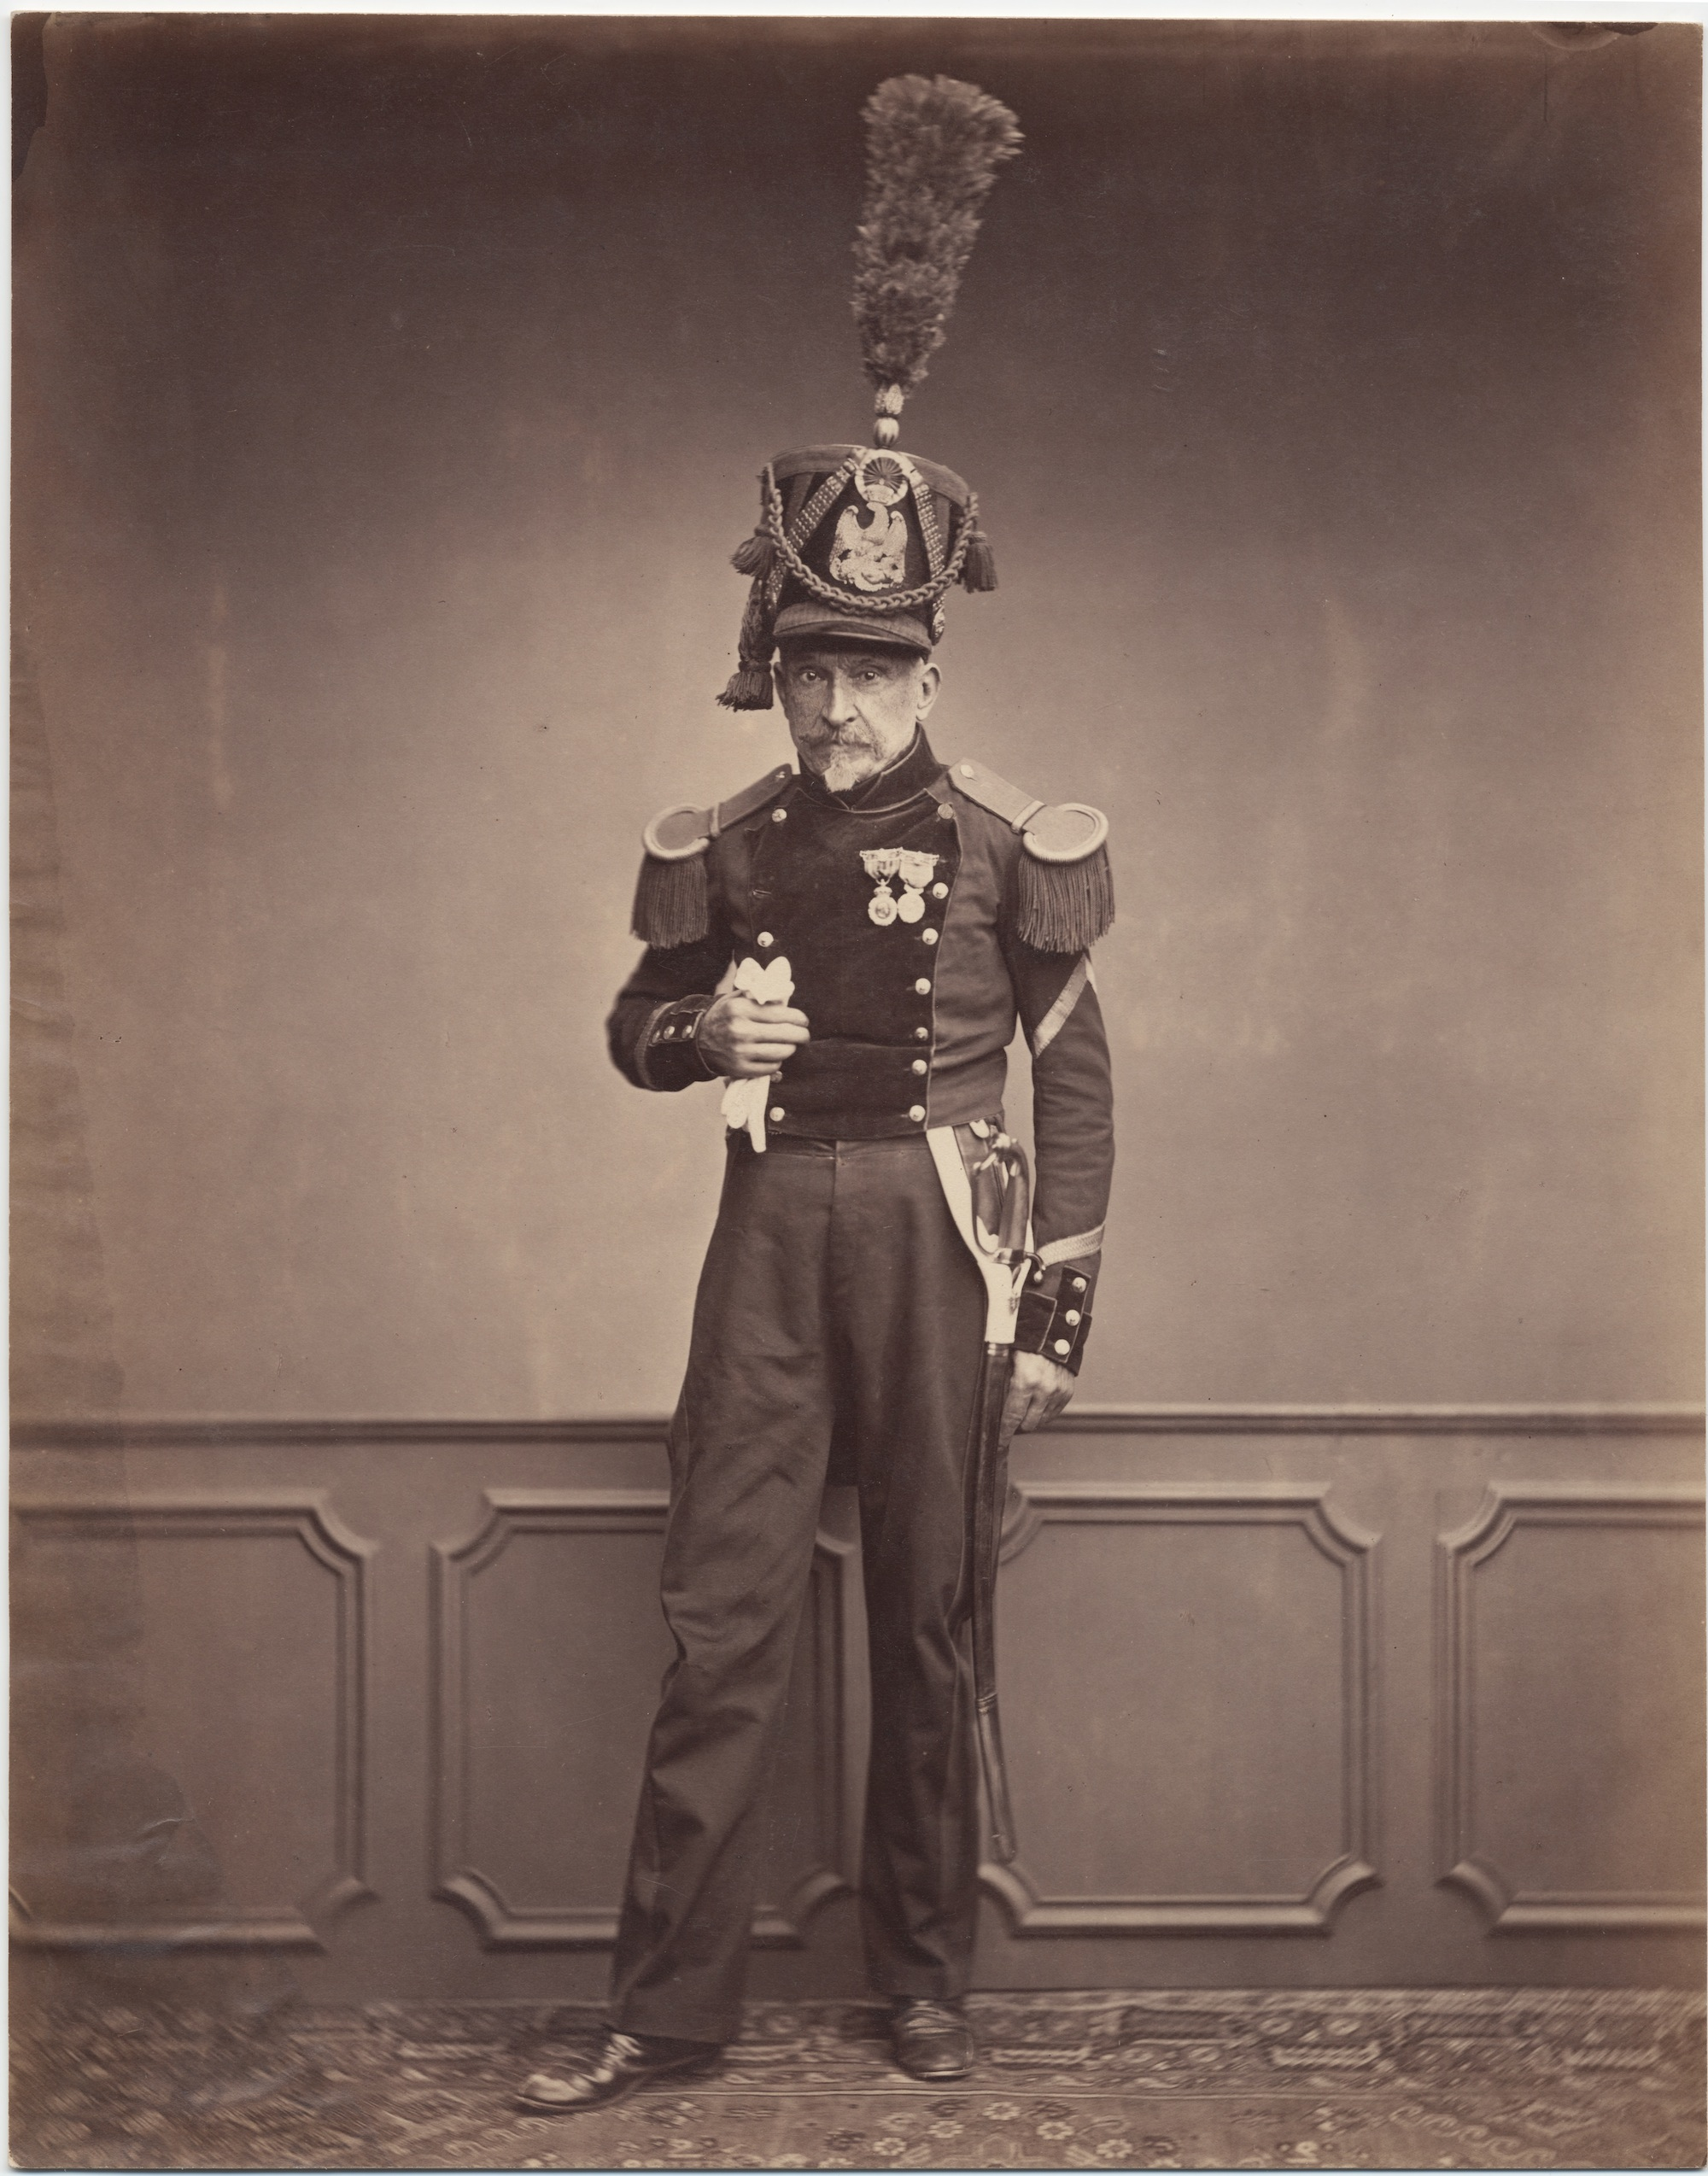 Monsieur Lefebre, Sergeant 2nd Regiment of Engineers, 1815